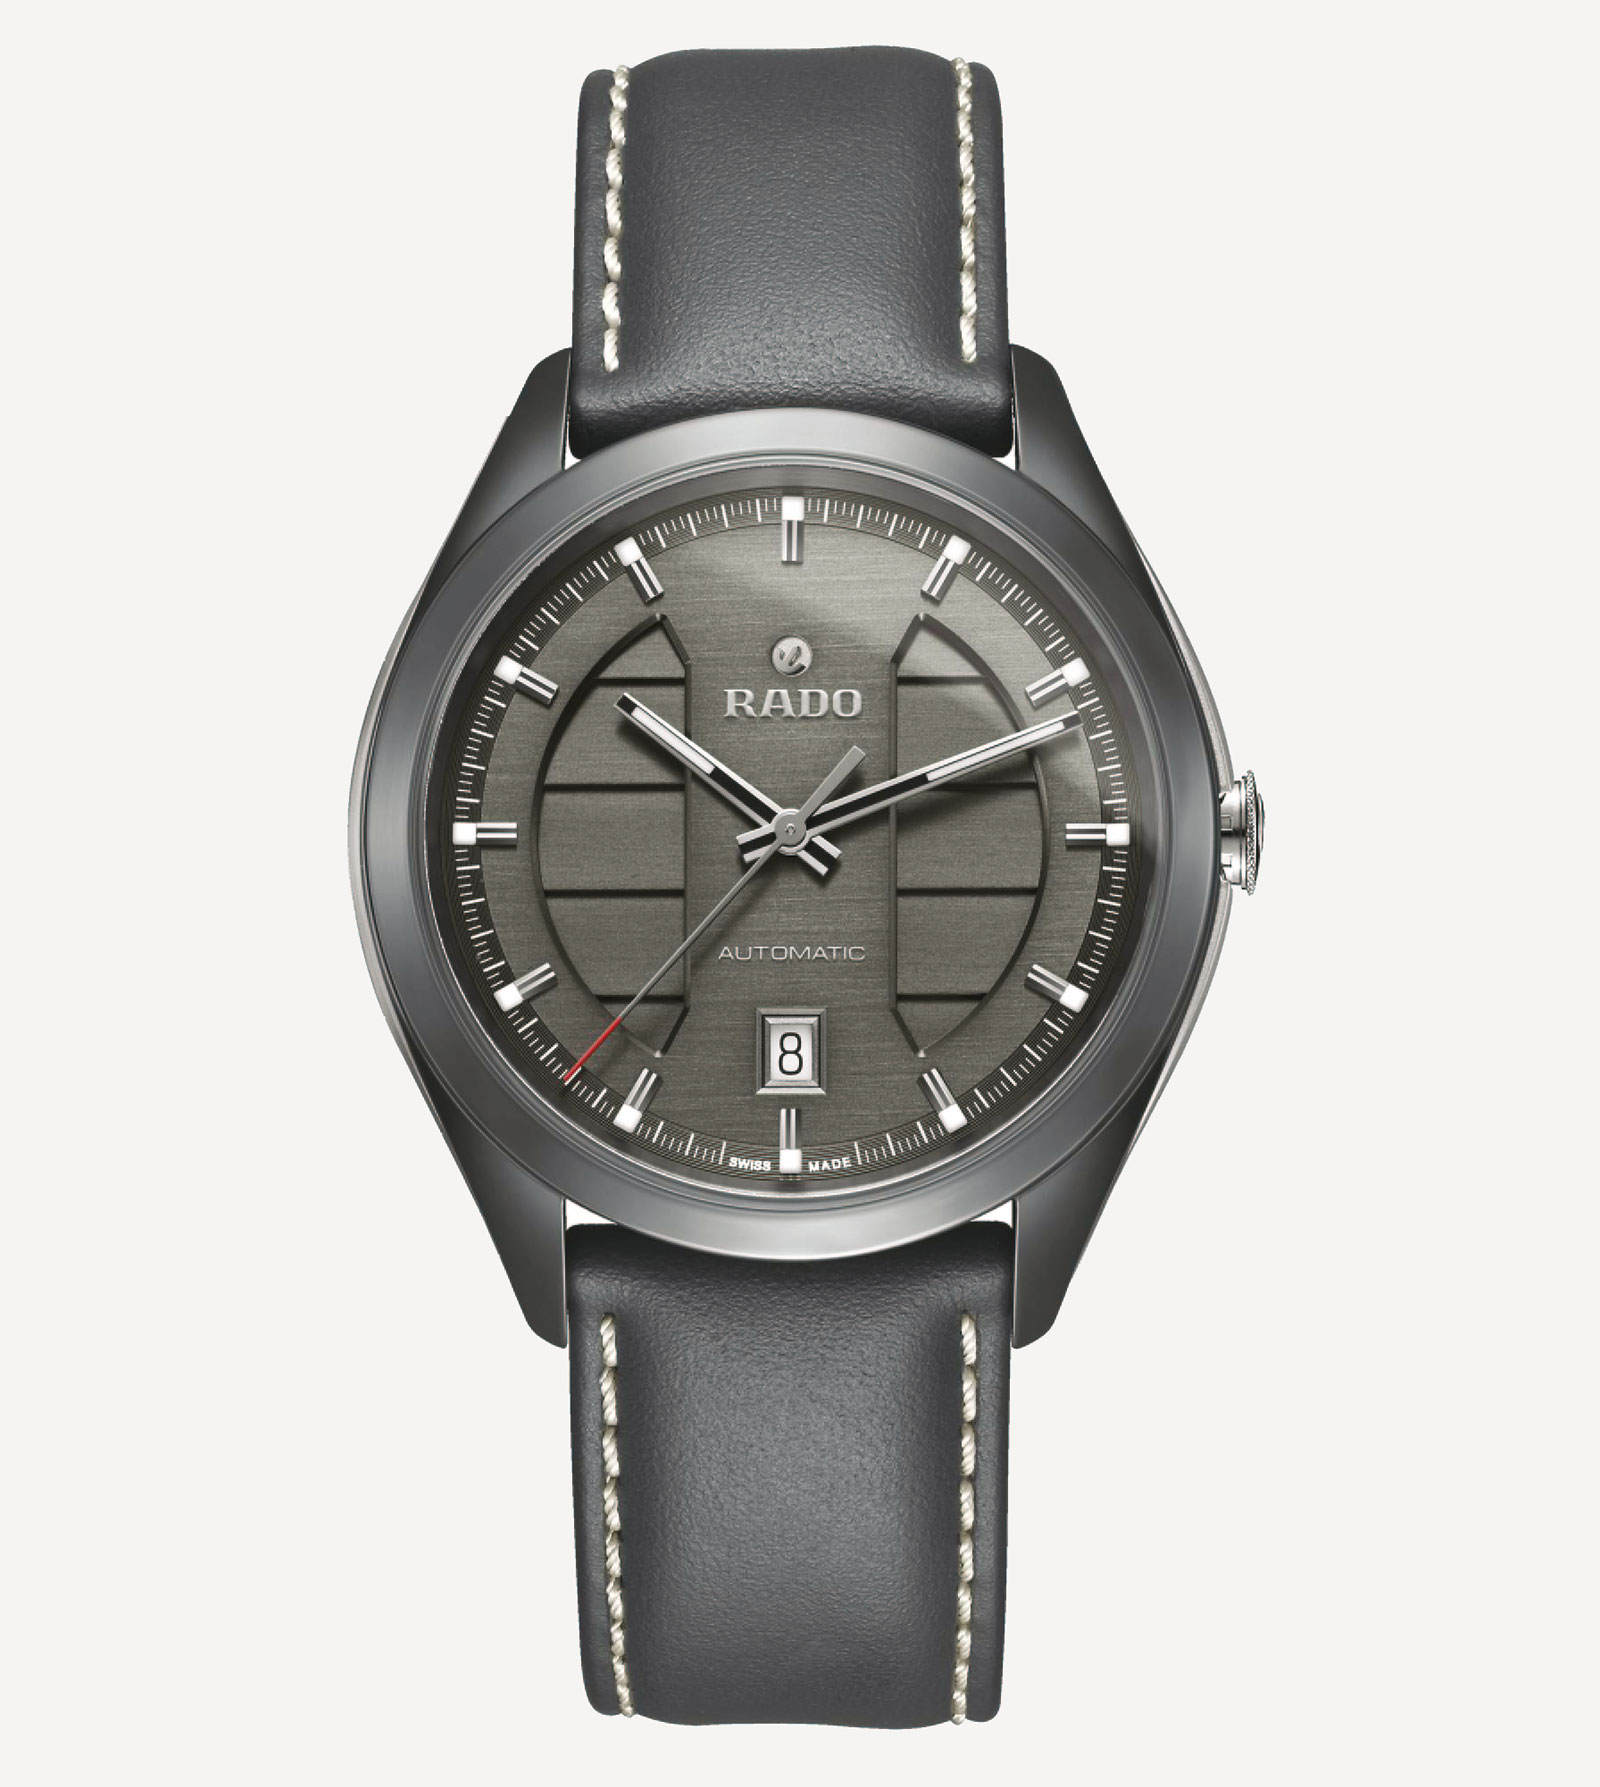 Rado HyperChrome Ultra Light deep grey 3